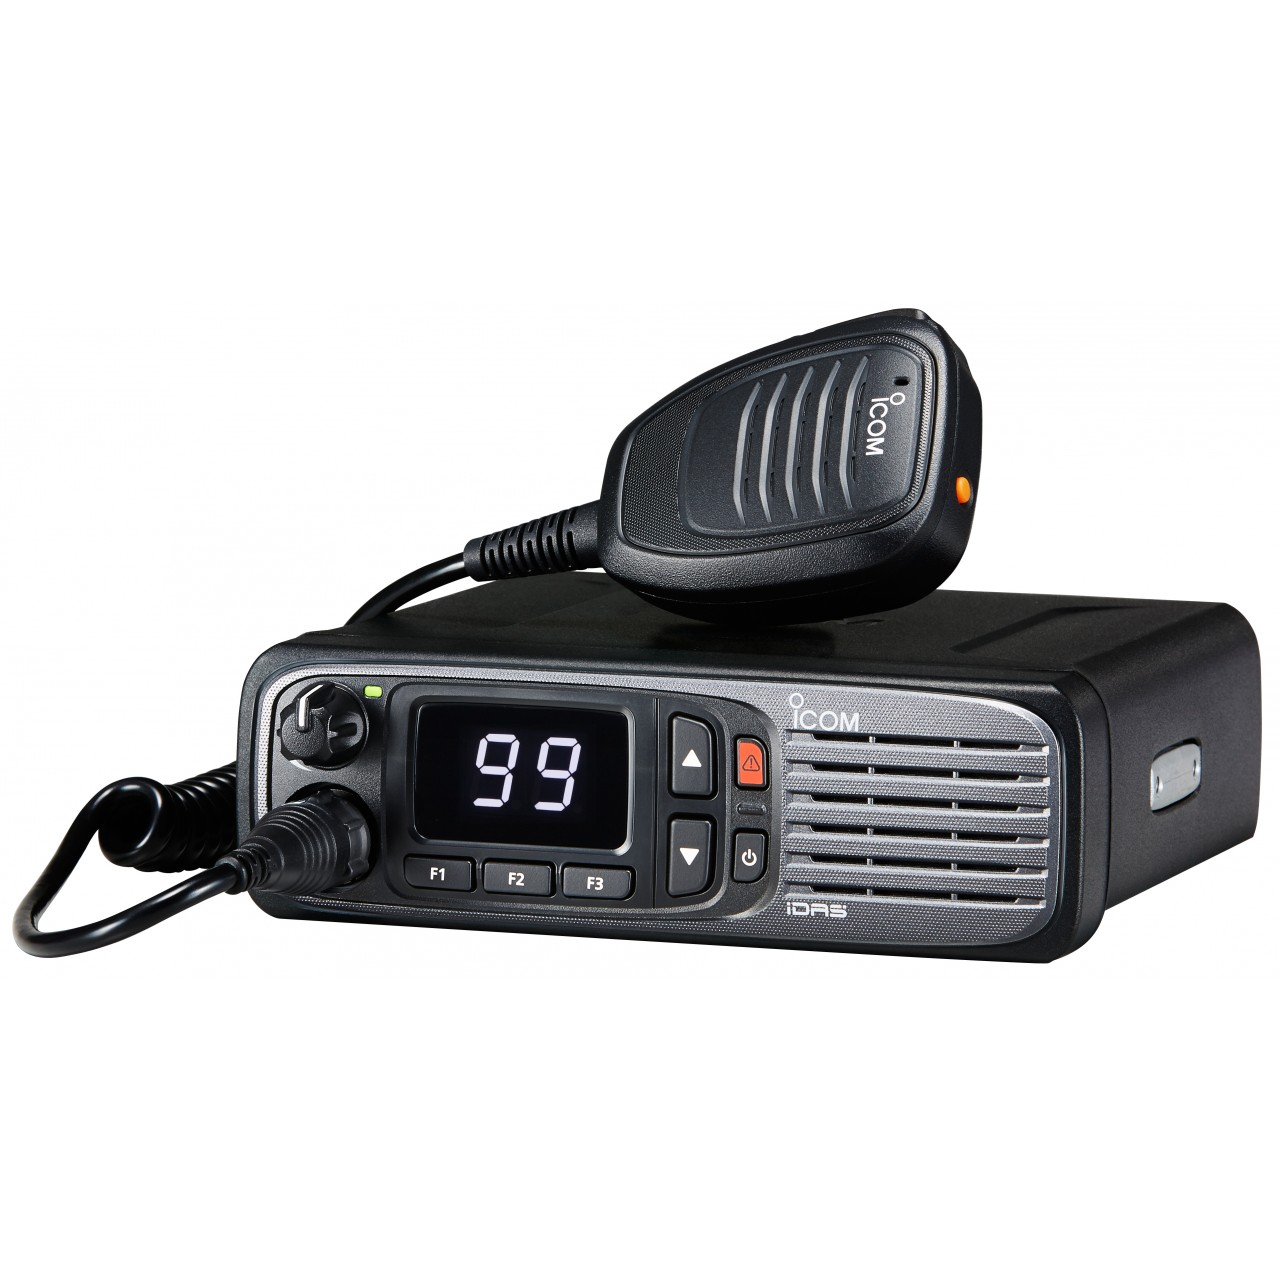 IC-F5400DS Mobiles - ICOM